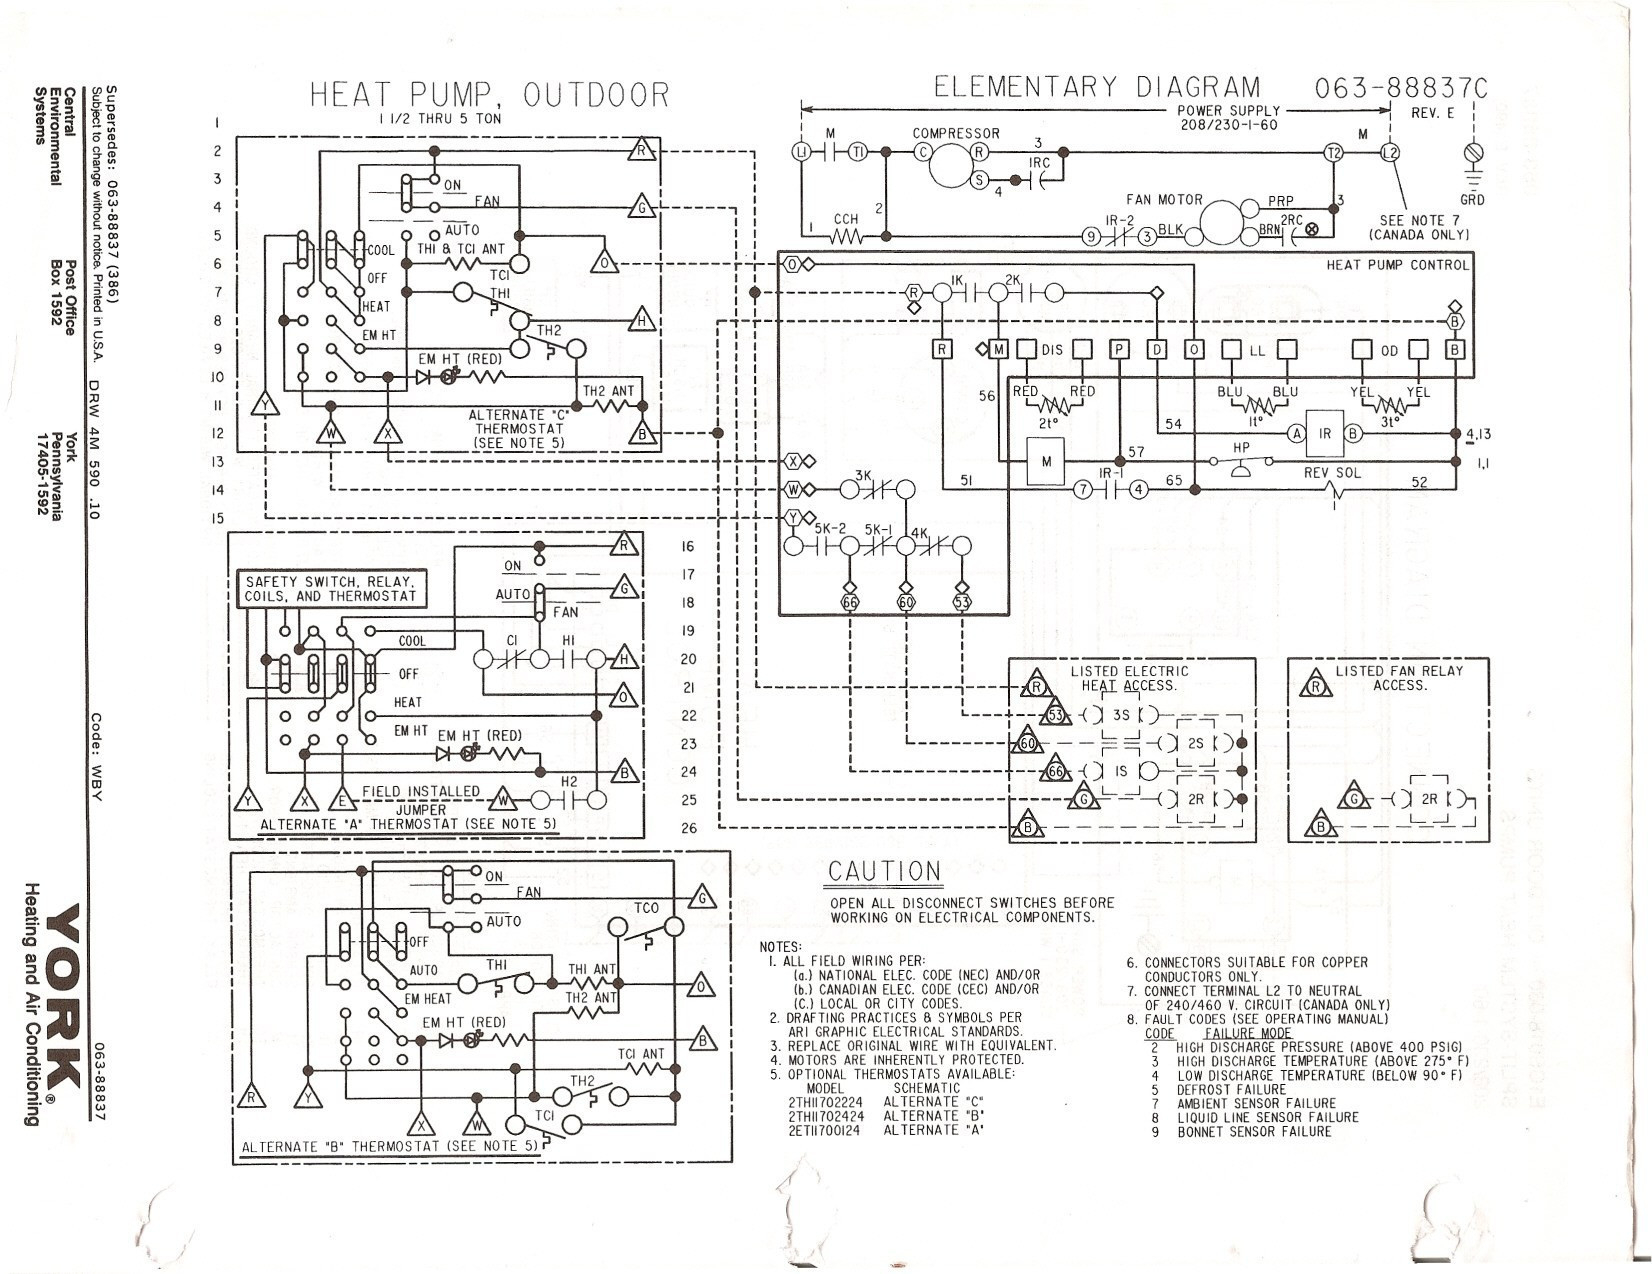 York Air Handler Wiring Diagram on york motor wiring diagram, york compressor wiring diagram, york defrost board wiring diagram, york rtu wiring diagrams, heat pump air handler diagram, york air handler systems, york ac wiring diagram, residential air handler diagram, trane air handler parts diagram, york heat pump wiring diagram, air handler schematic diagram, york air conditioner schematic, home air conditioning diagram, york air handler parts breakdown, york hvac wiring diagram, york heat pump thermostat wiring, york condensing unit wiring diagram, york air conditioning wiring diagram, york thermostat wiring diagram, air handler unit diagram,